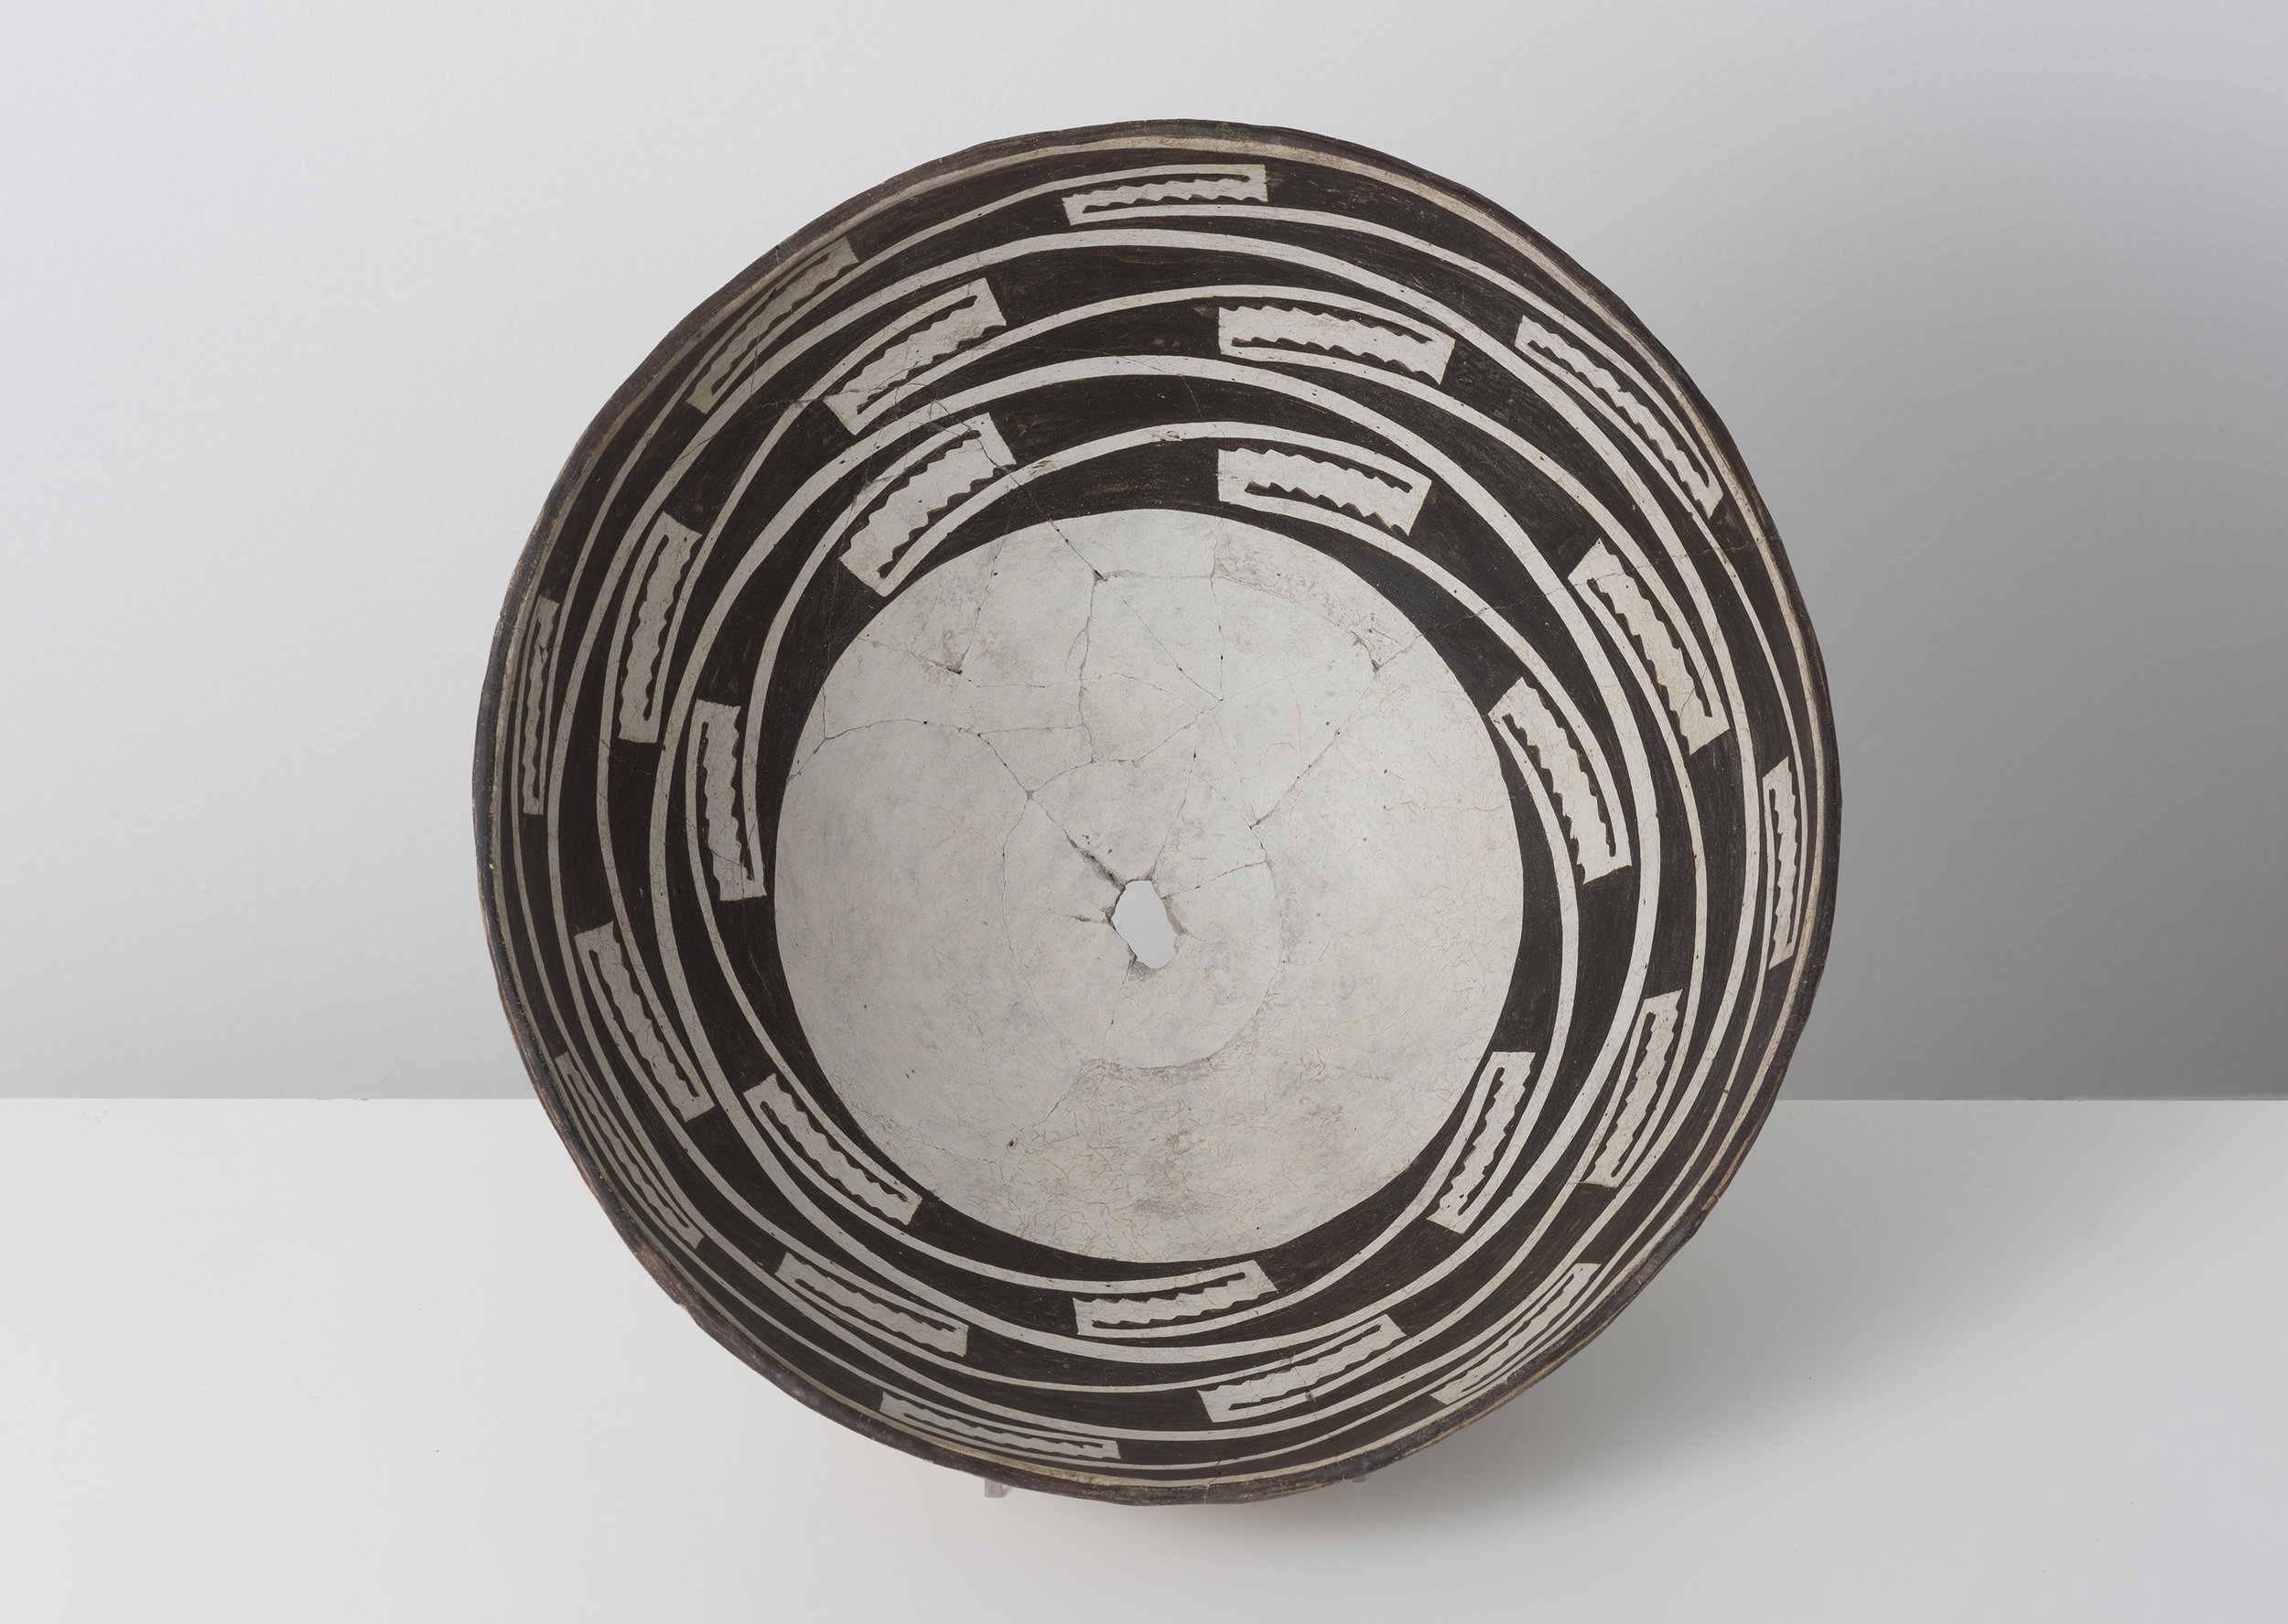 Classic Mimbres Black-on-white  Trance portal c. 900 - 1000 CE Painted ceramic 13 inches diameter, 4 inches depth